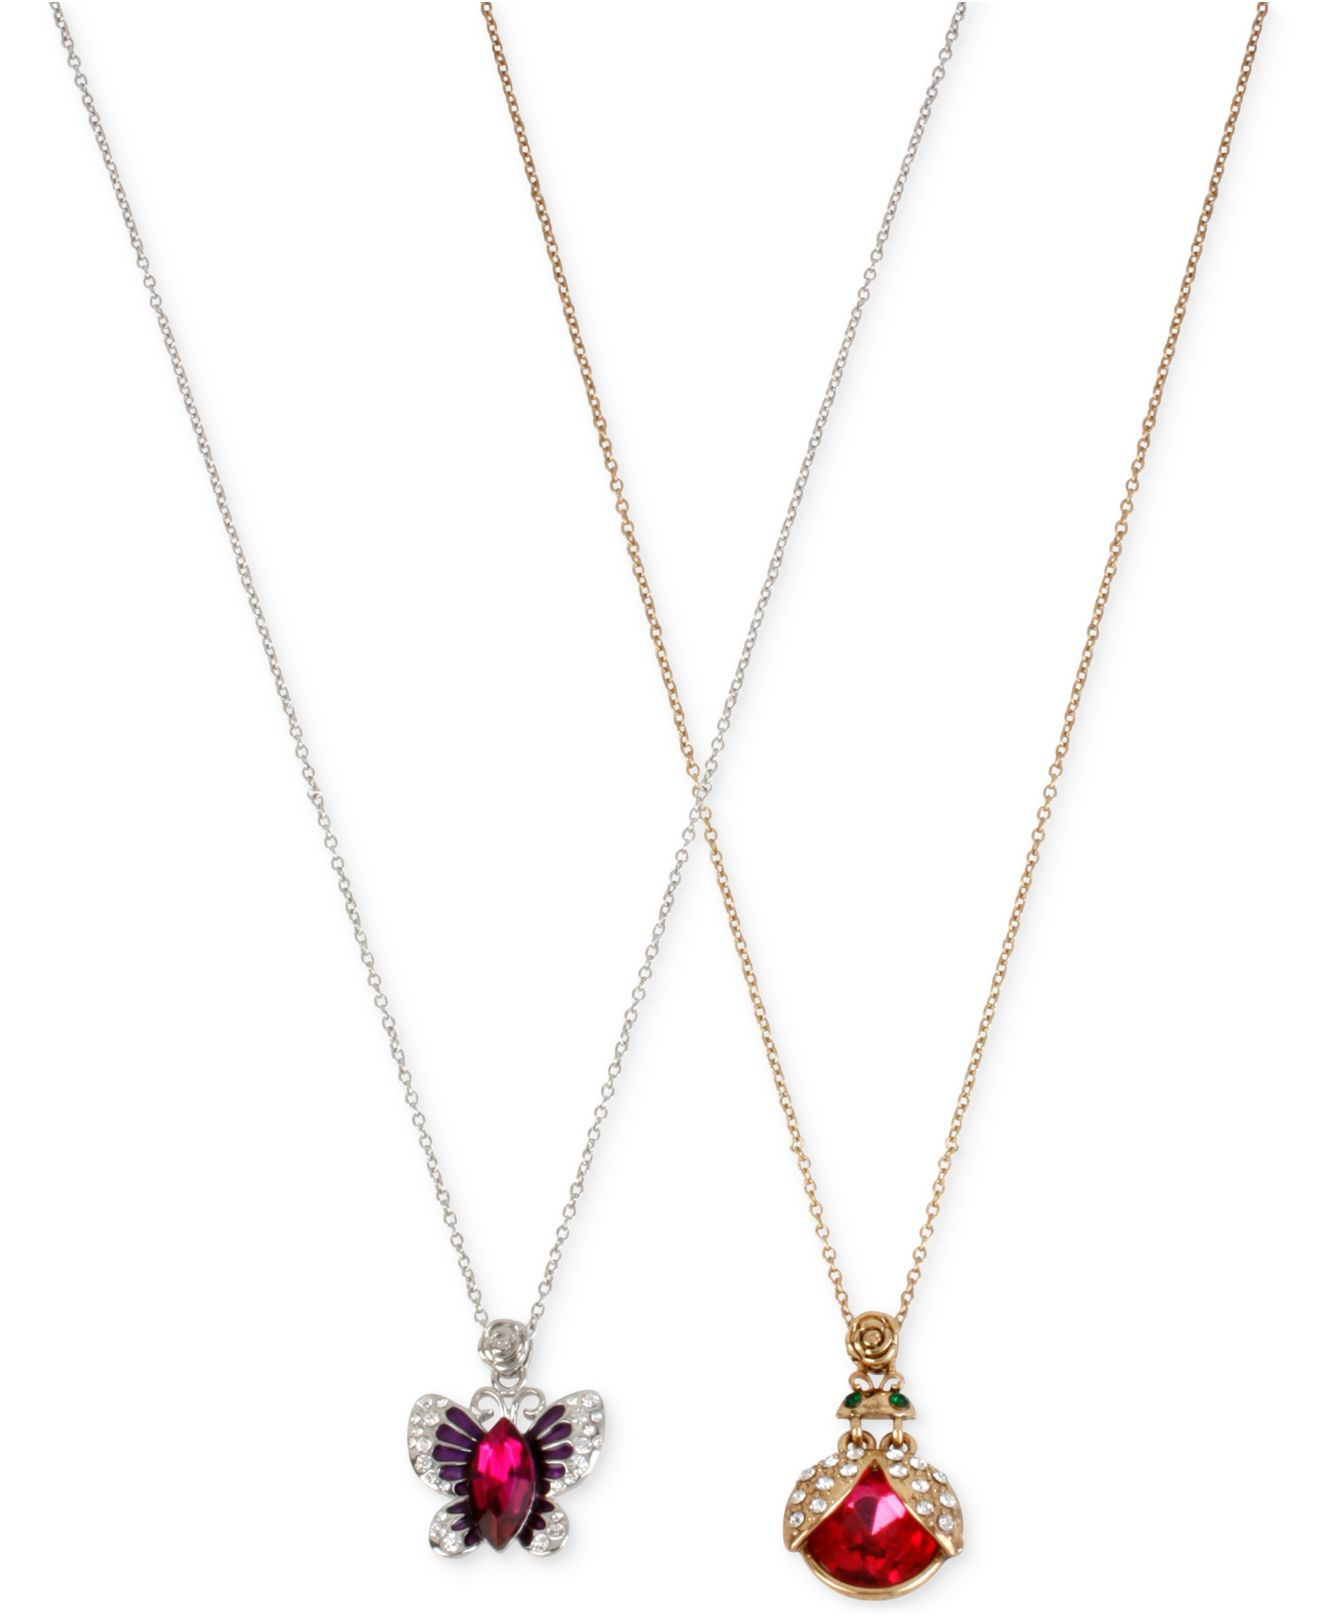 Betsey johnson Two-tone Crystal And Stone Critter Necklace